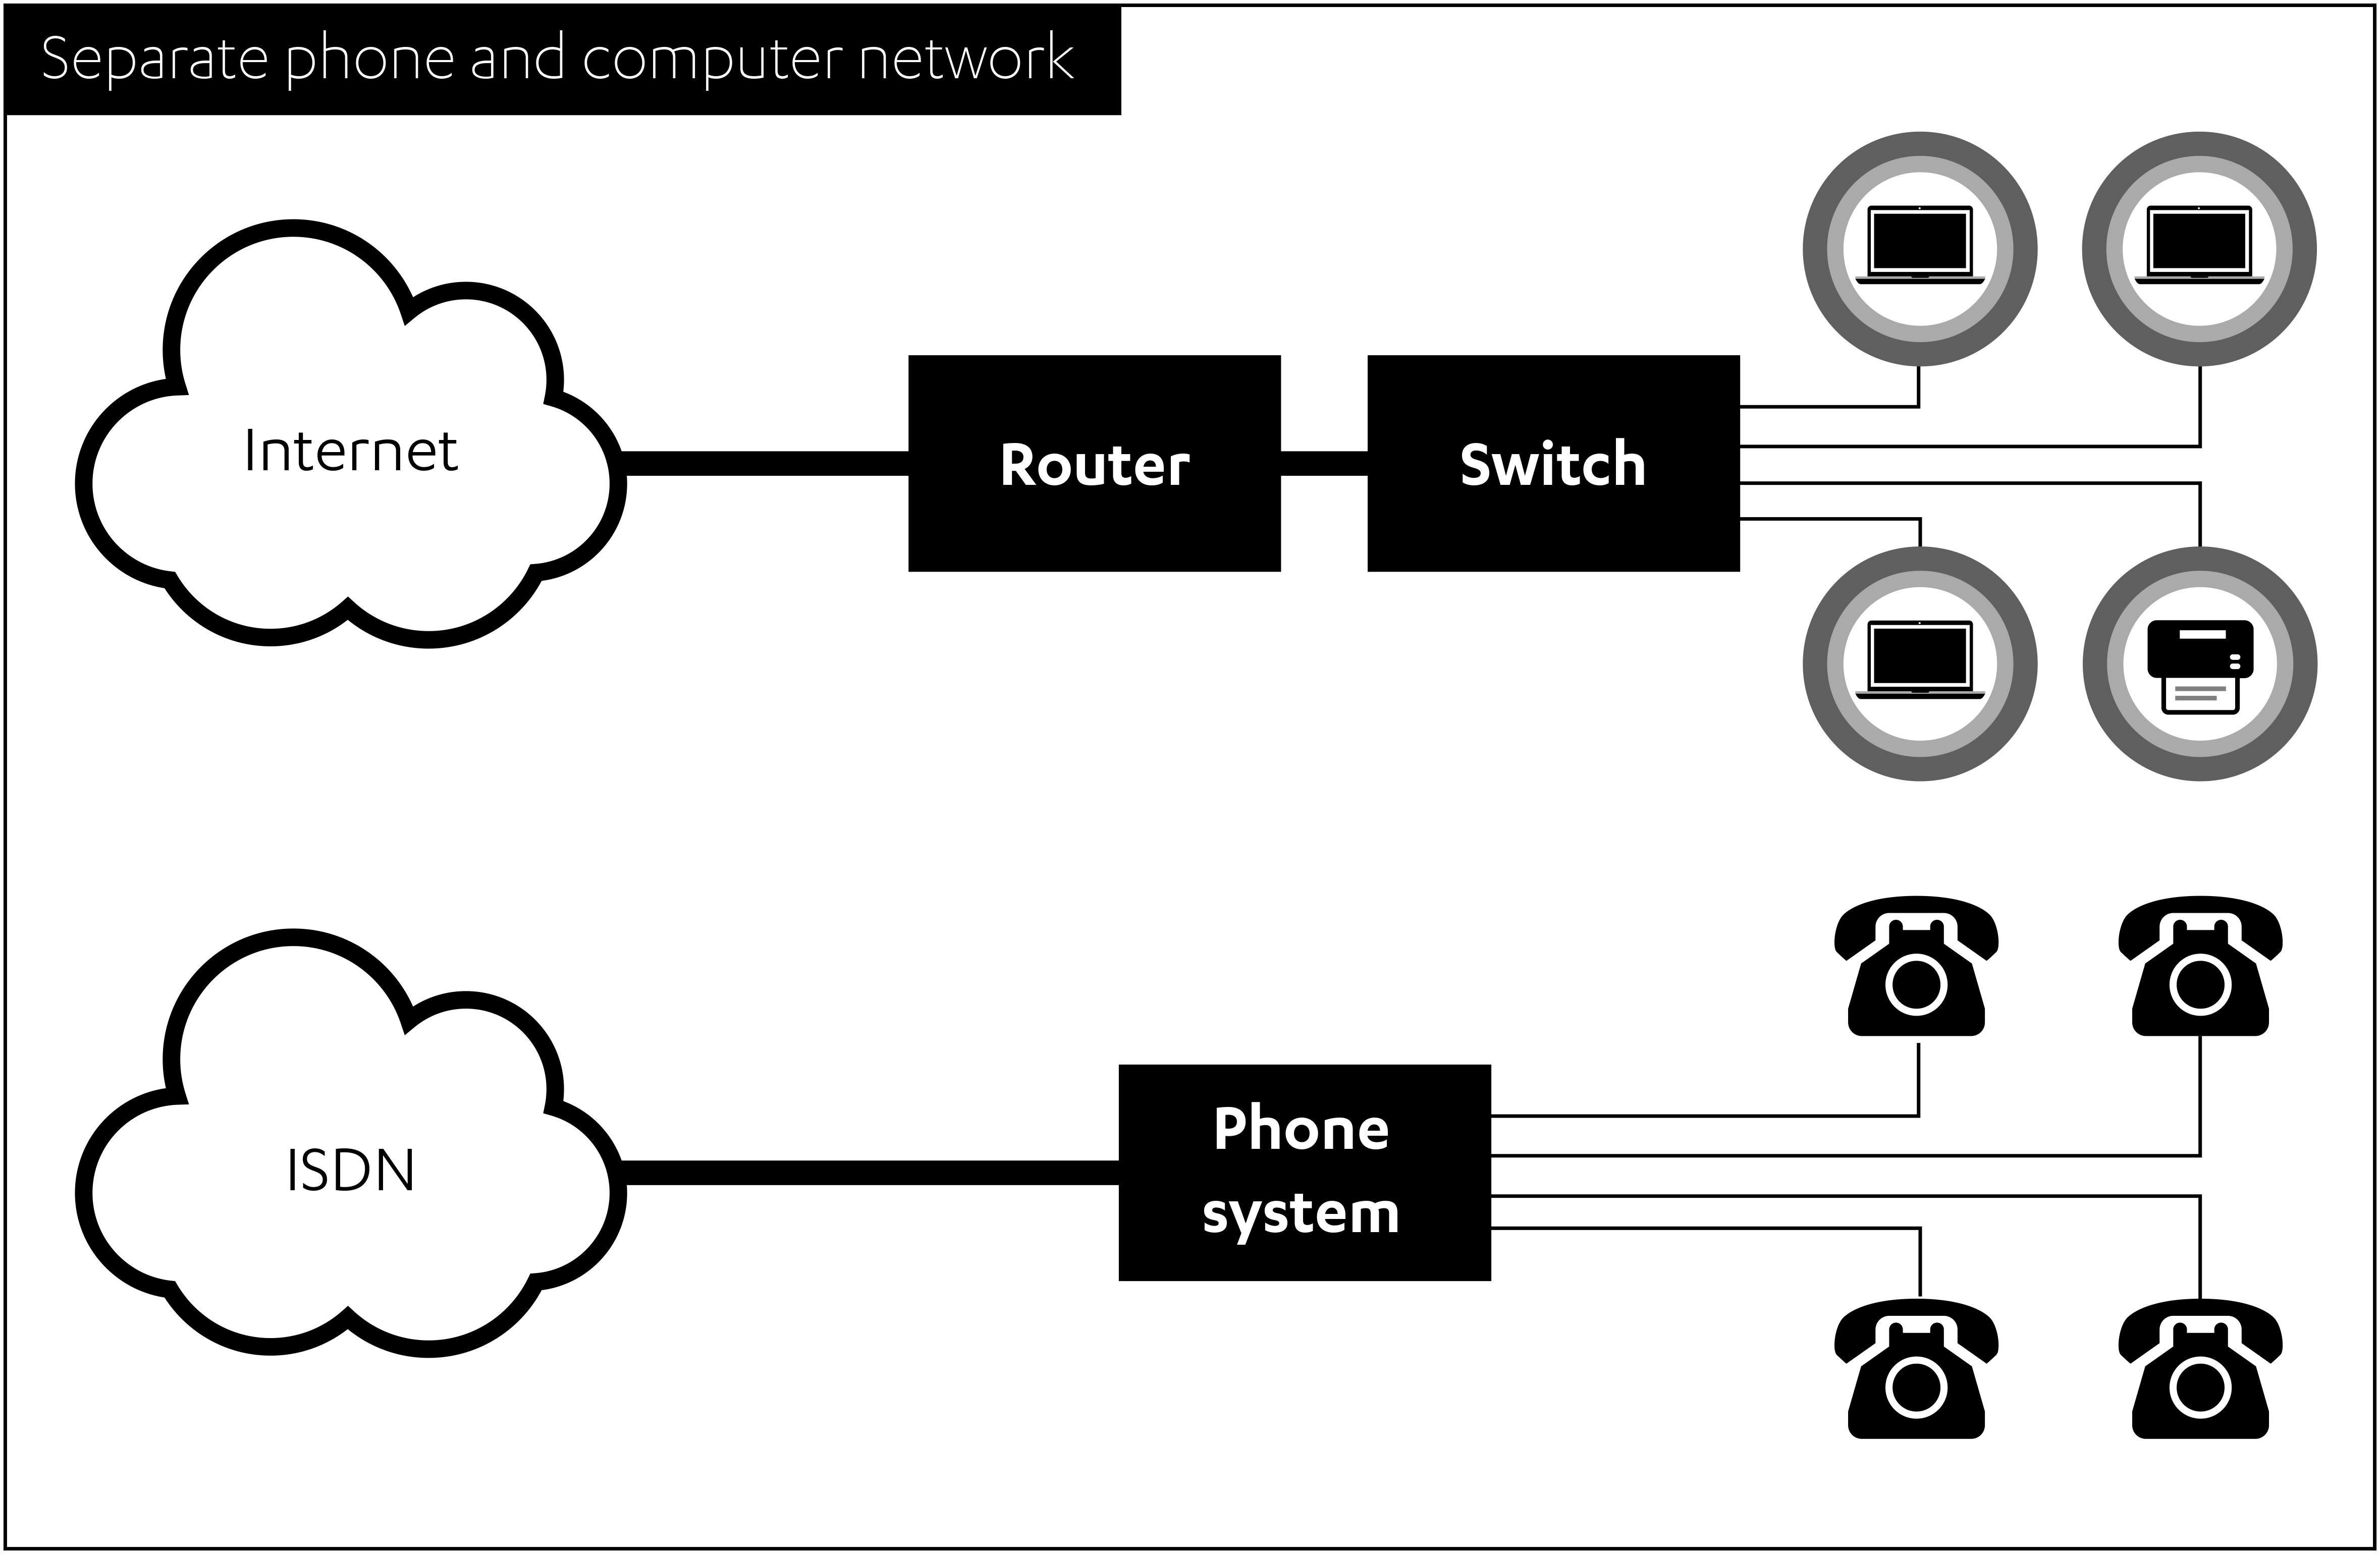 Internet and ISDN